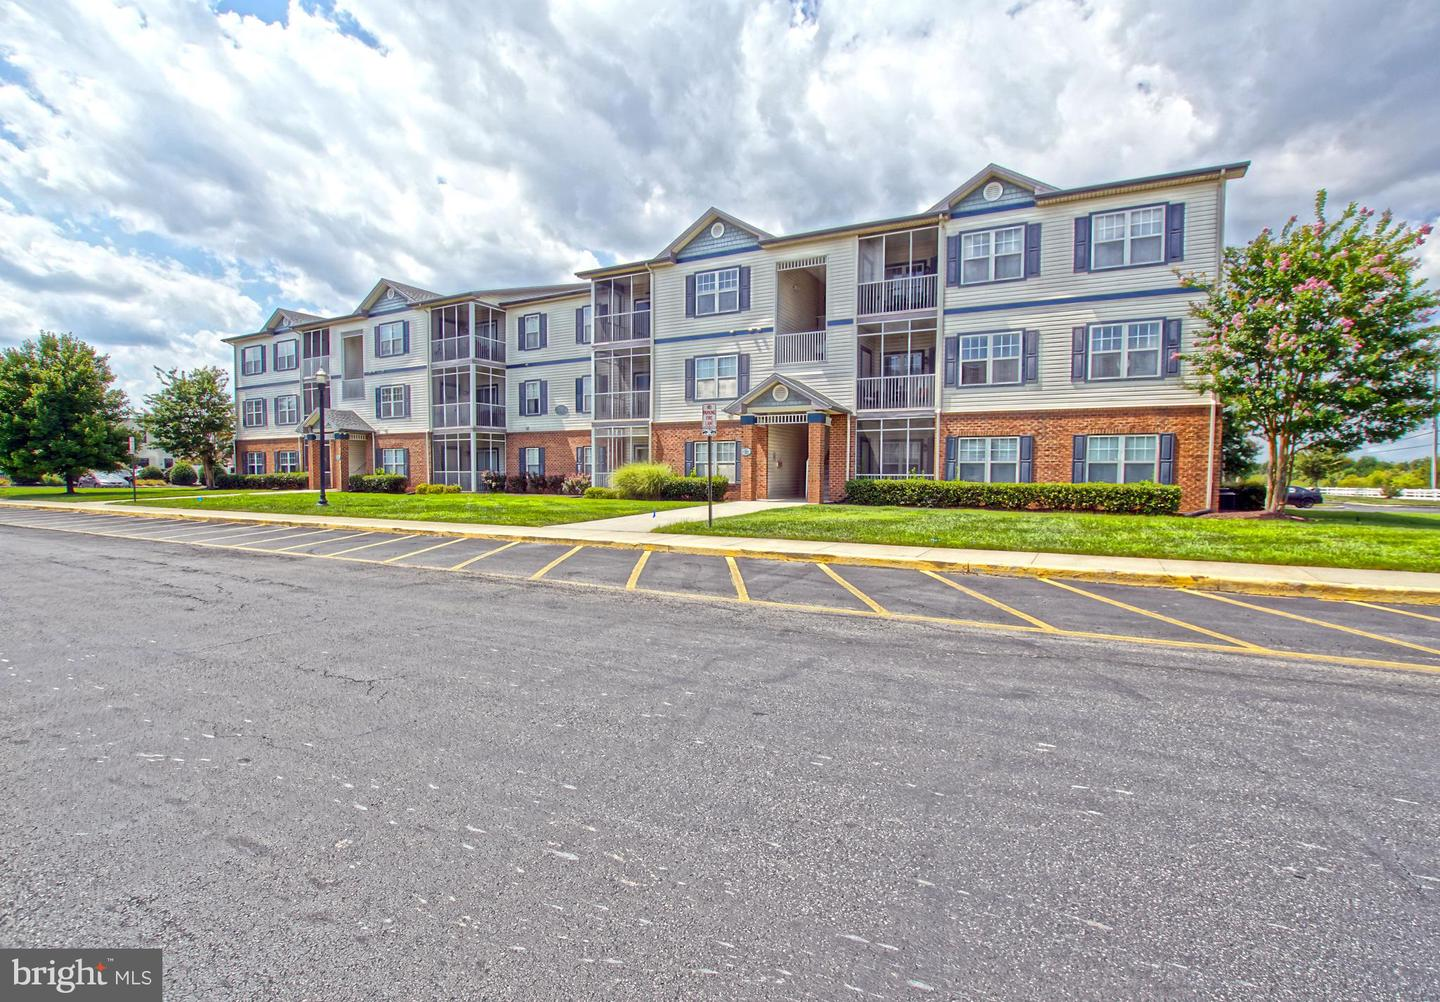 DESU145900-301954554857-2019-10-04-15-22-22 17046 N Brandt St #2208 | Lewes, DE Real Estate For Sale | MLS# Desu145900  - Lee Ann Group